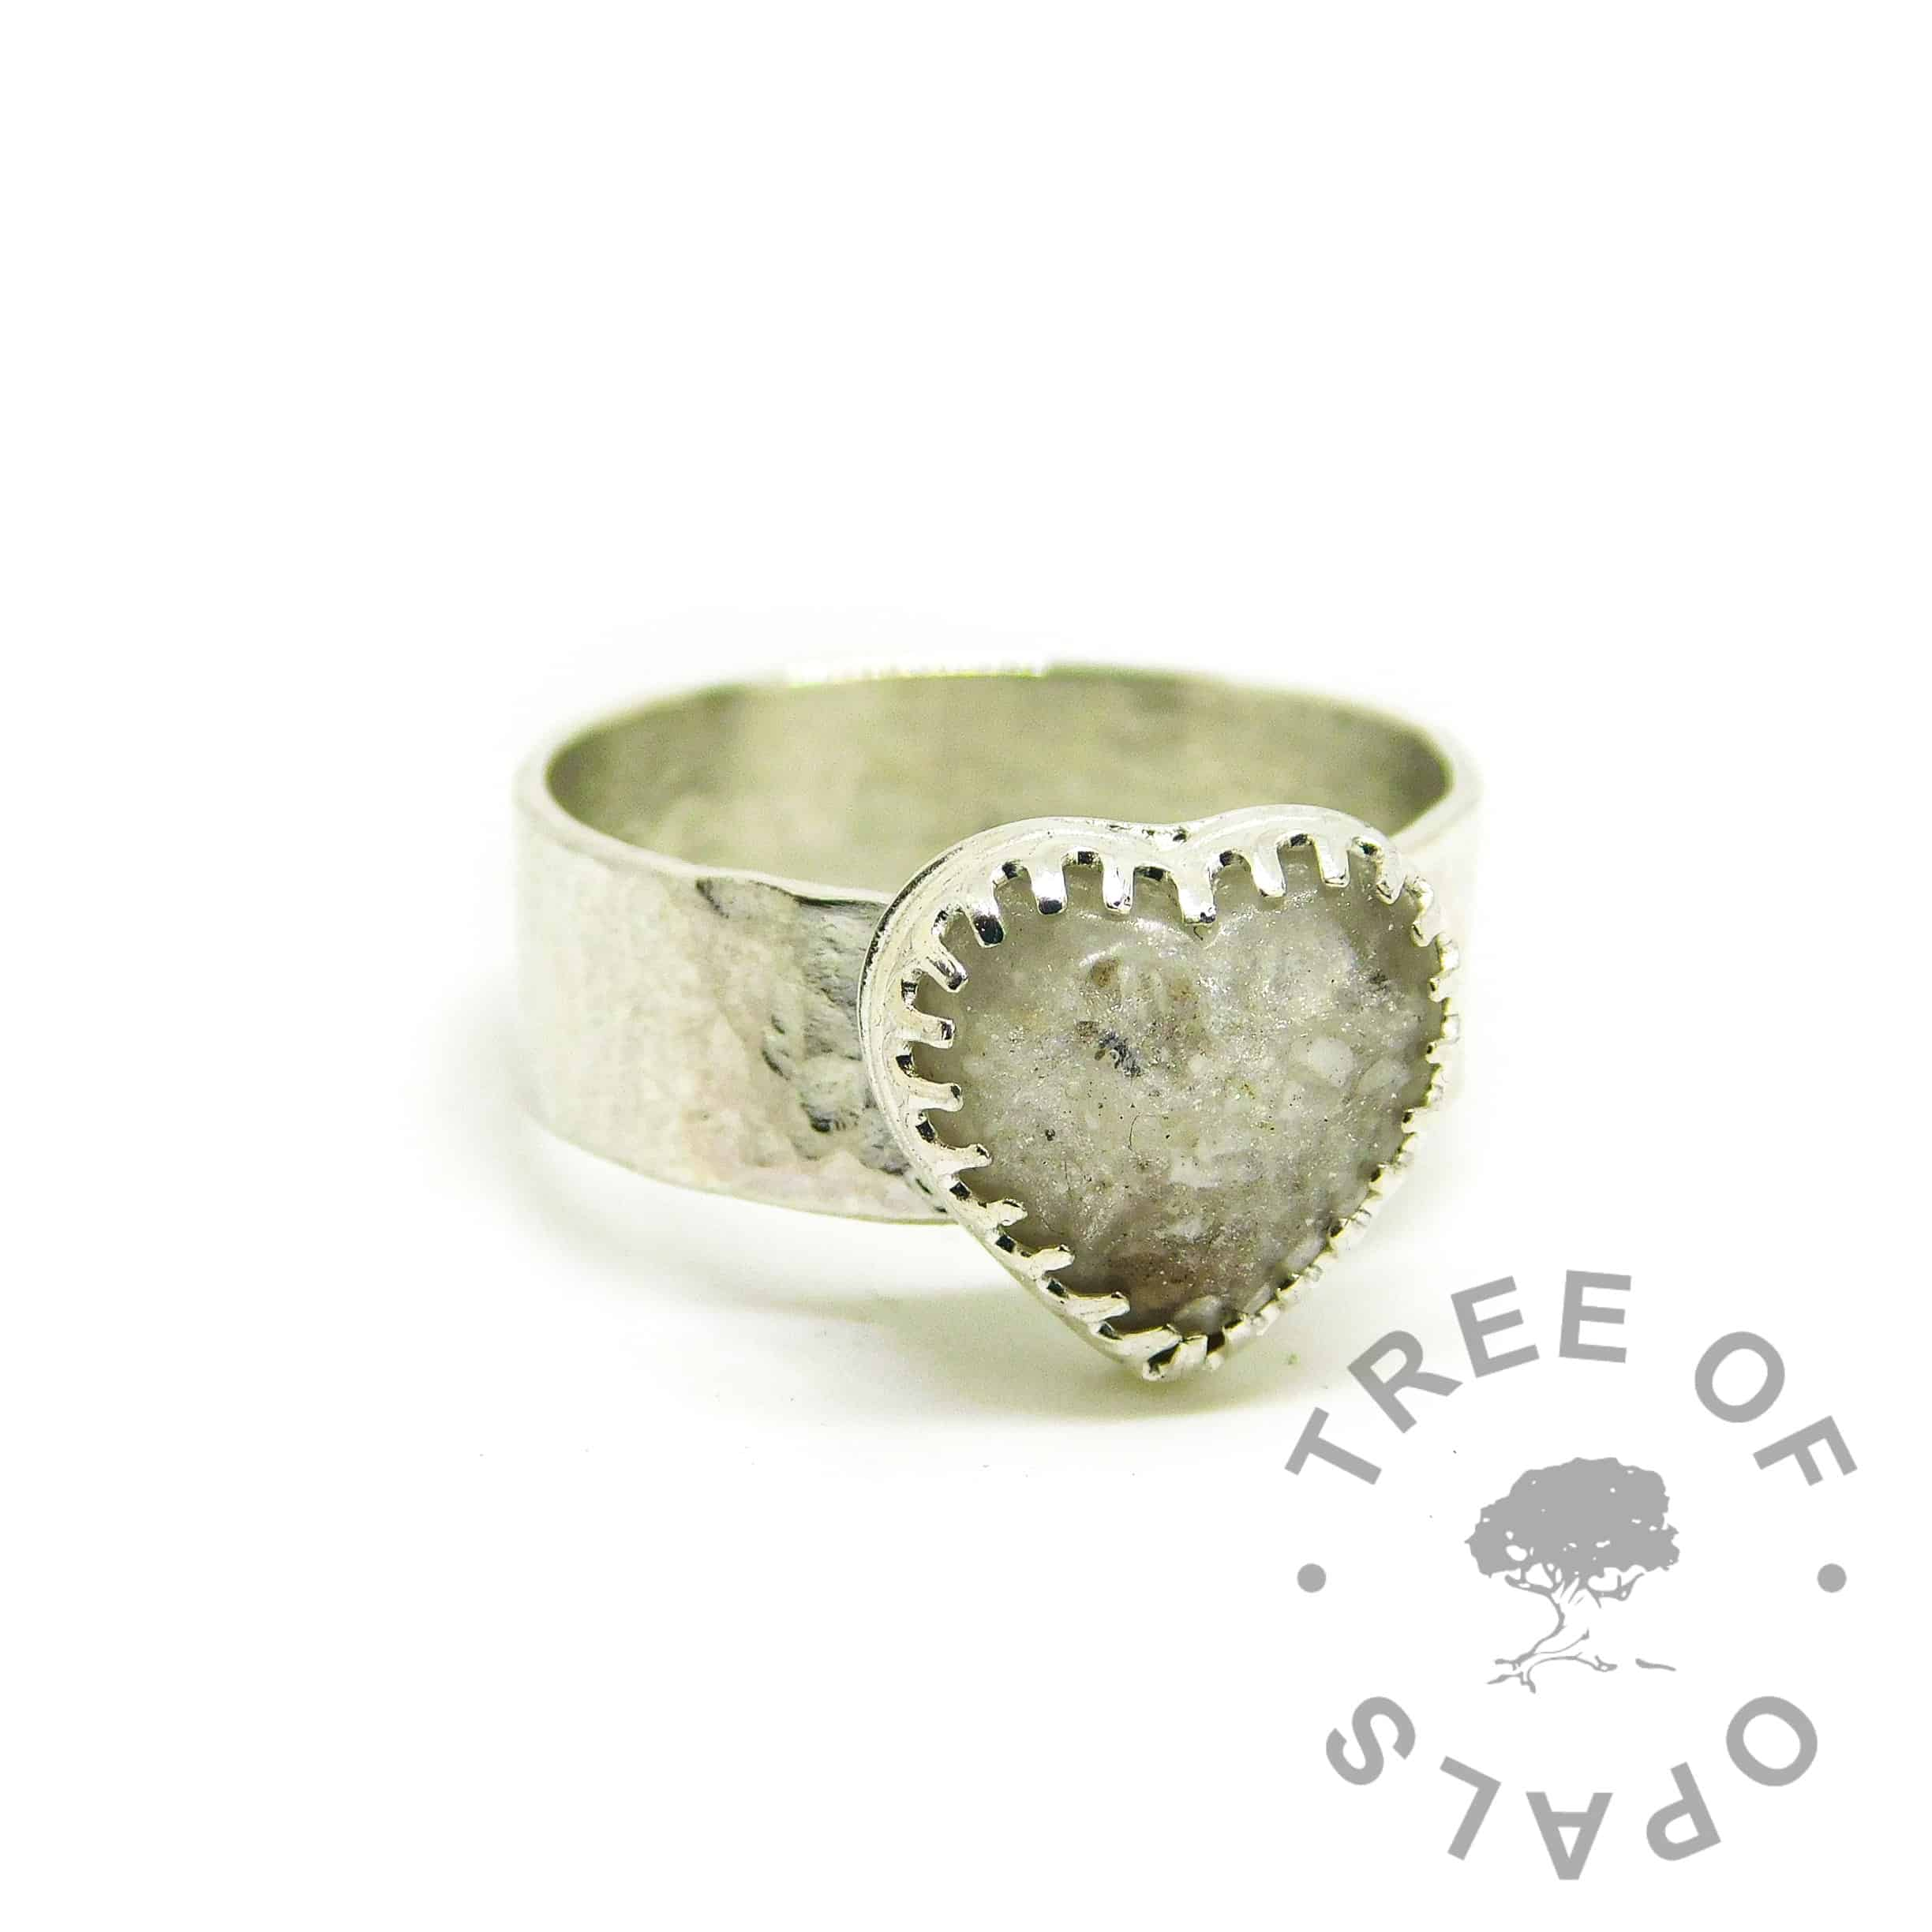 white heart ashes jewellery ring on textured 6mm band, cremation ashes and unicorn white resin sparkle mix in a 10mm scalloped heart setting